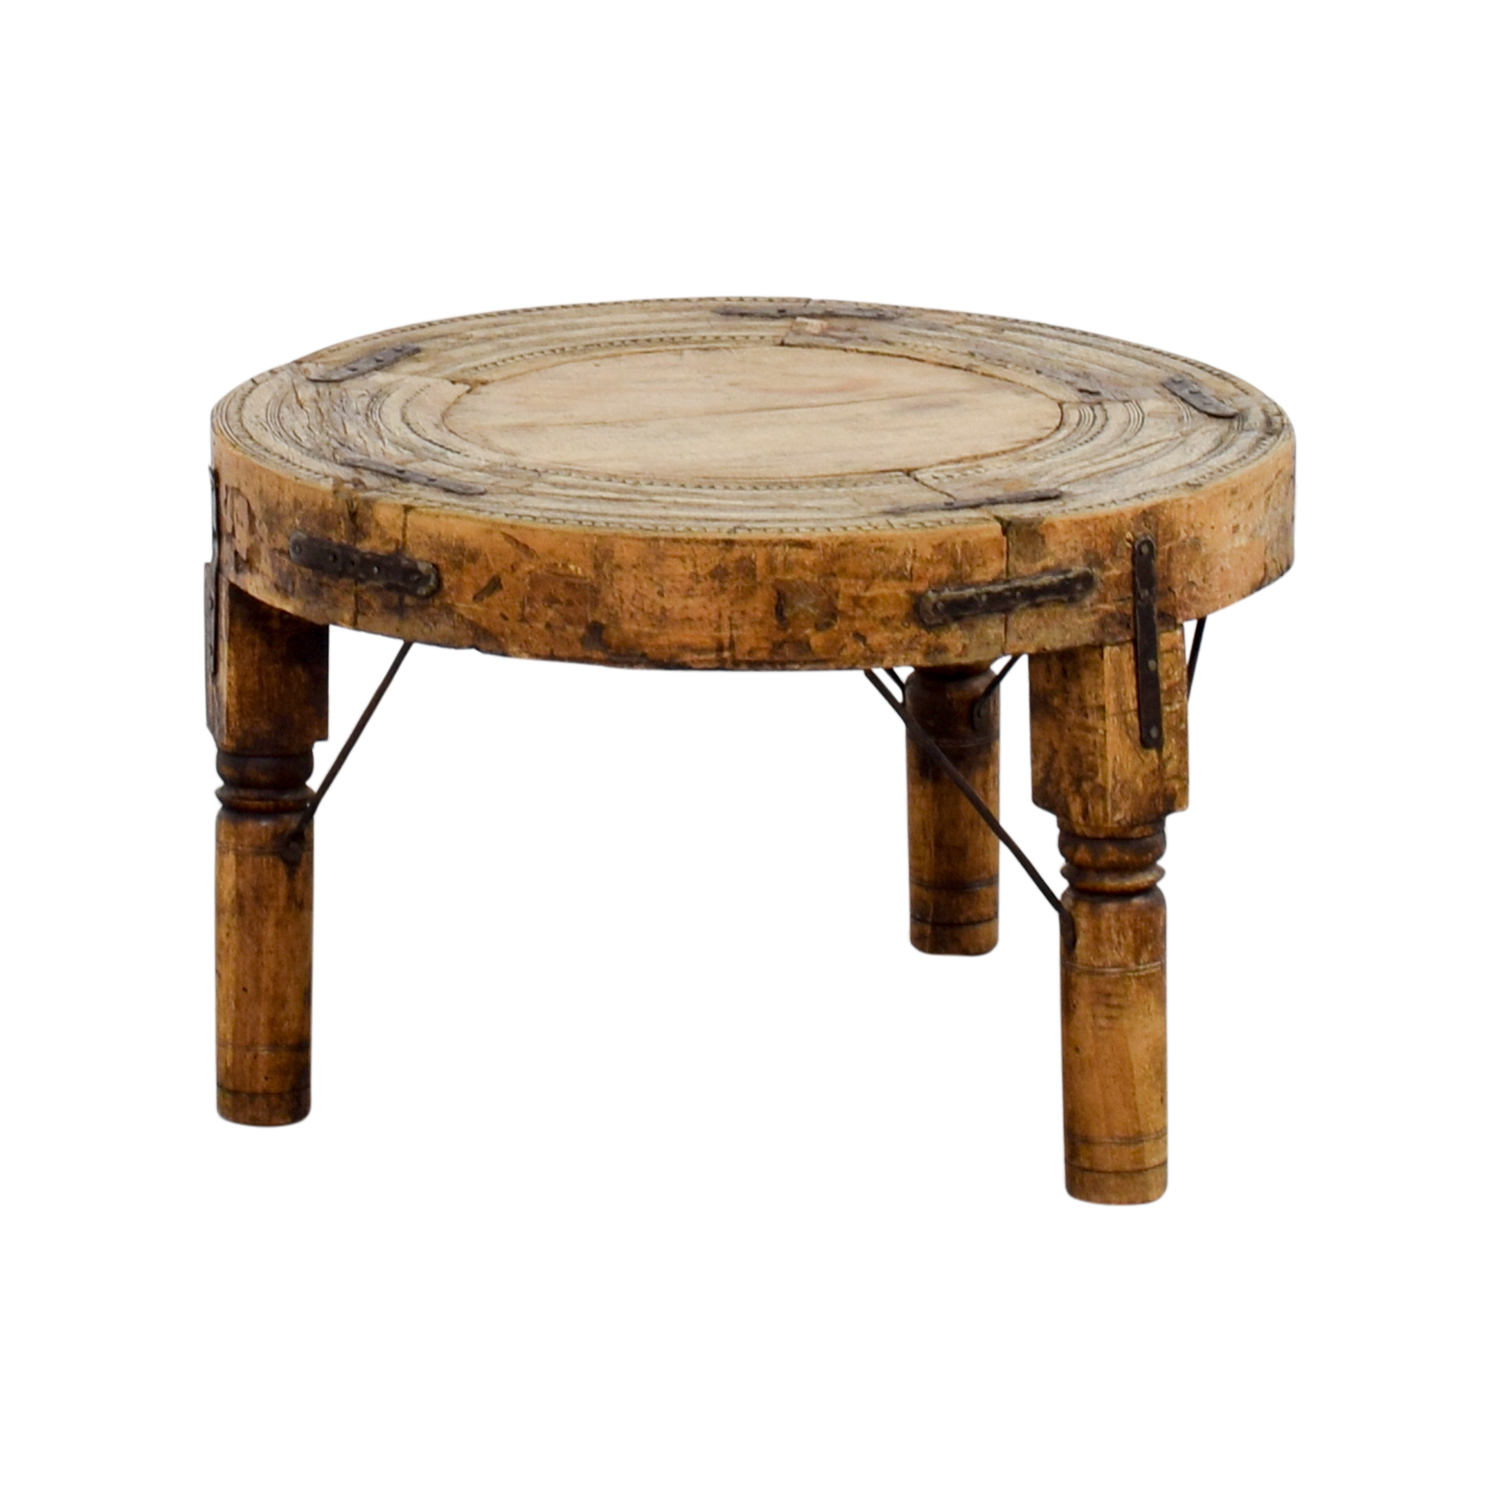 57% OFF Distressed Three Legged Side Table Tables